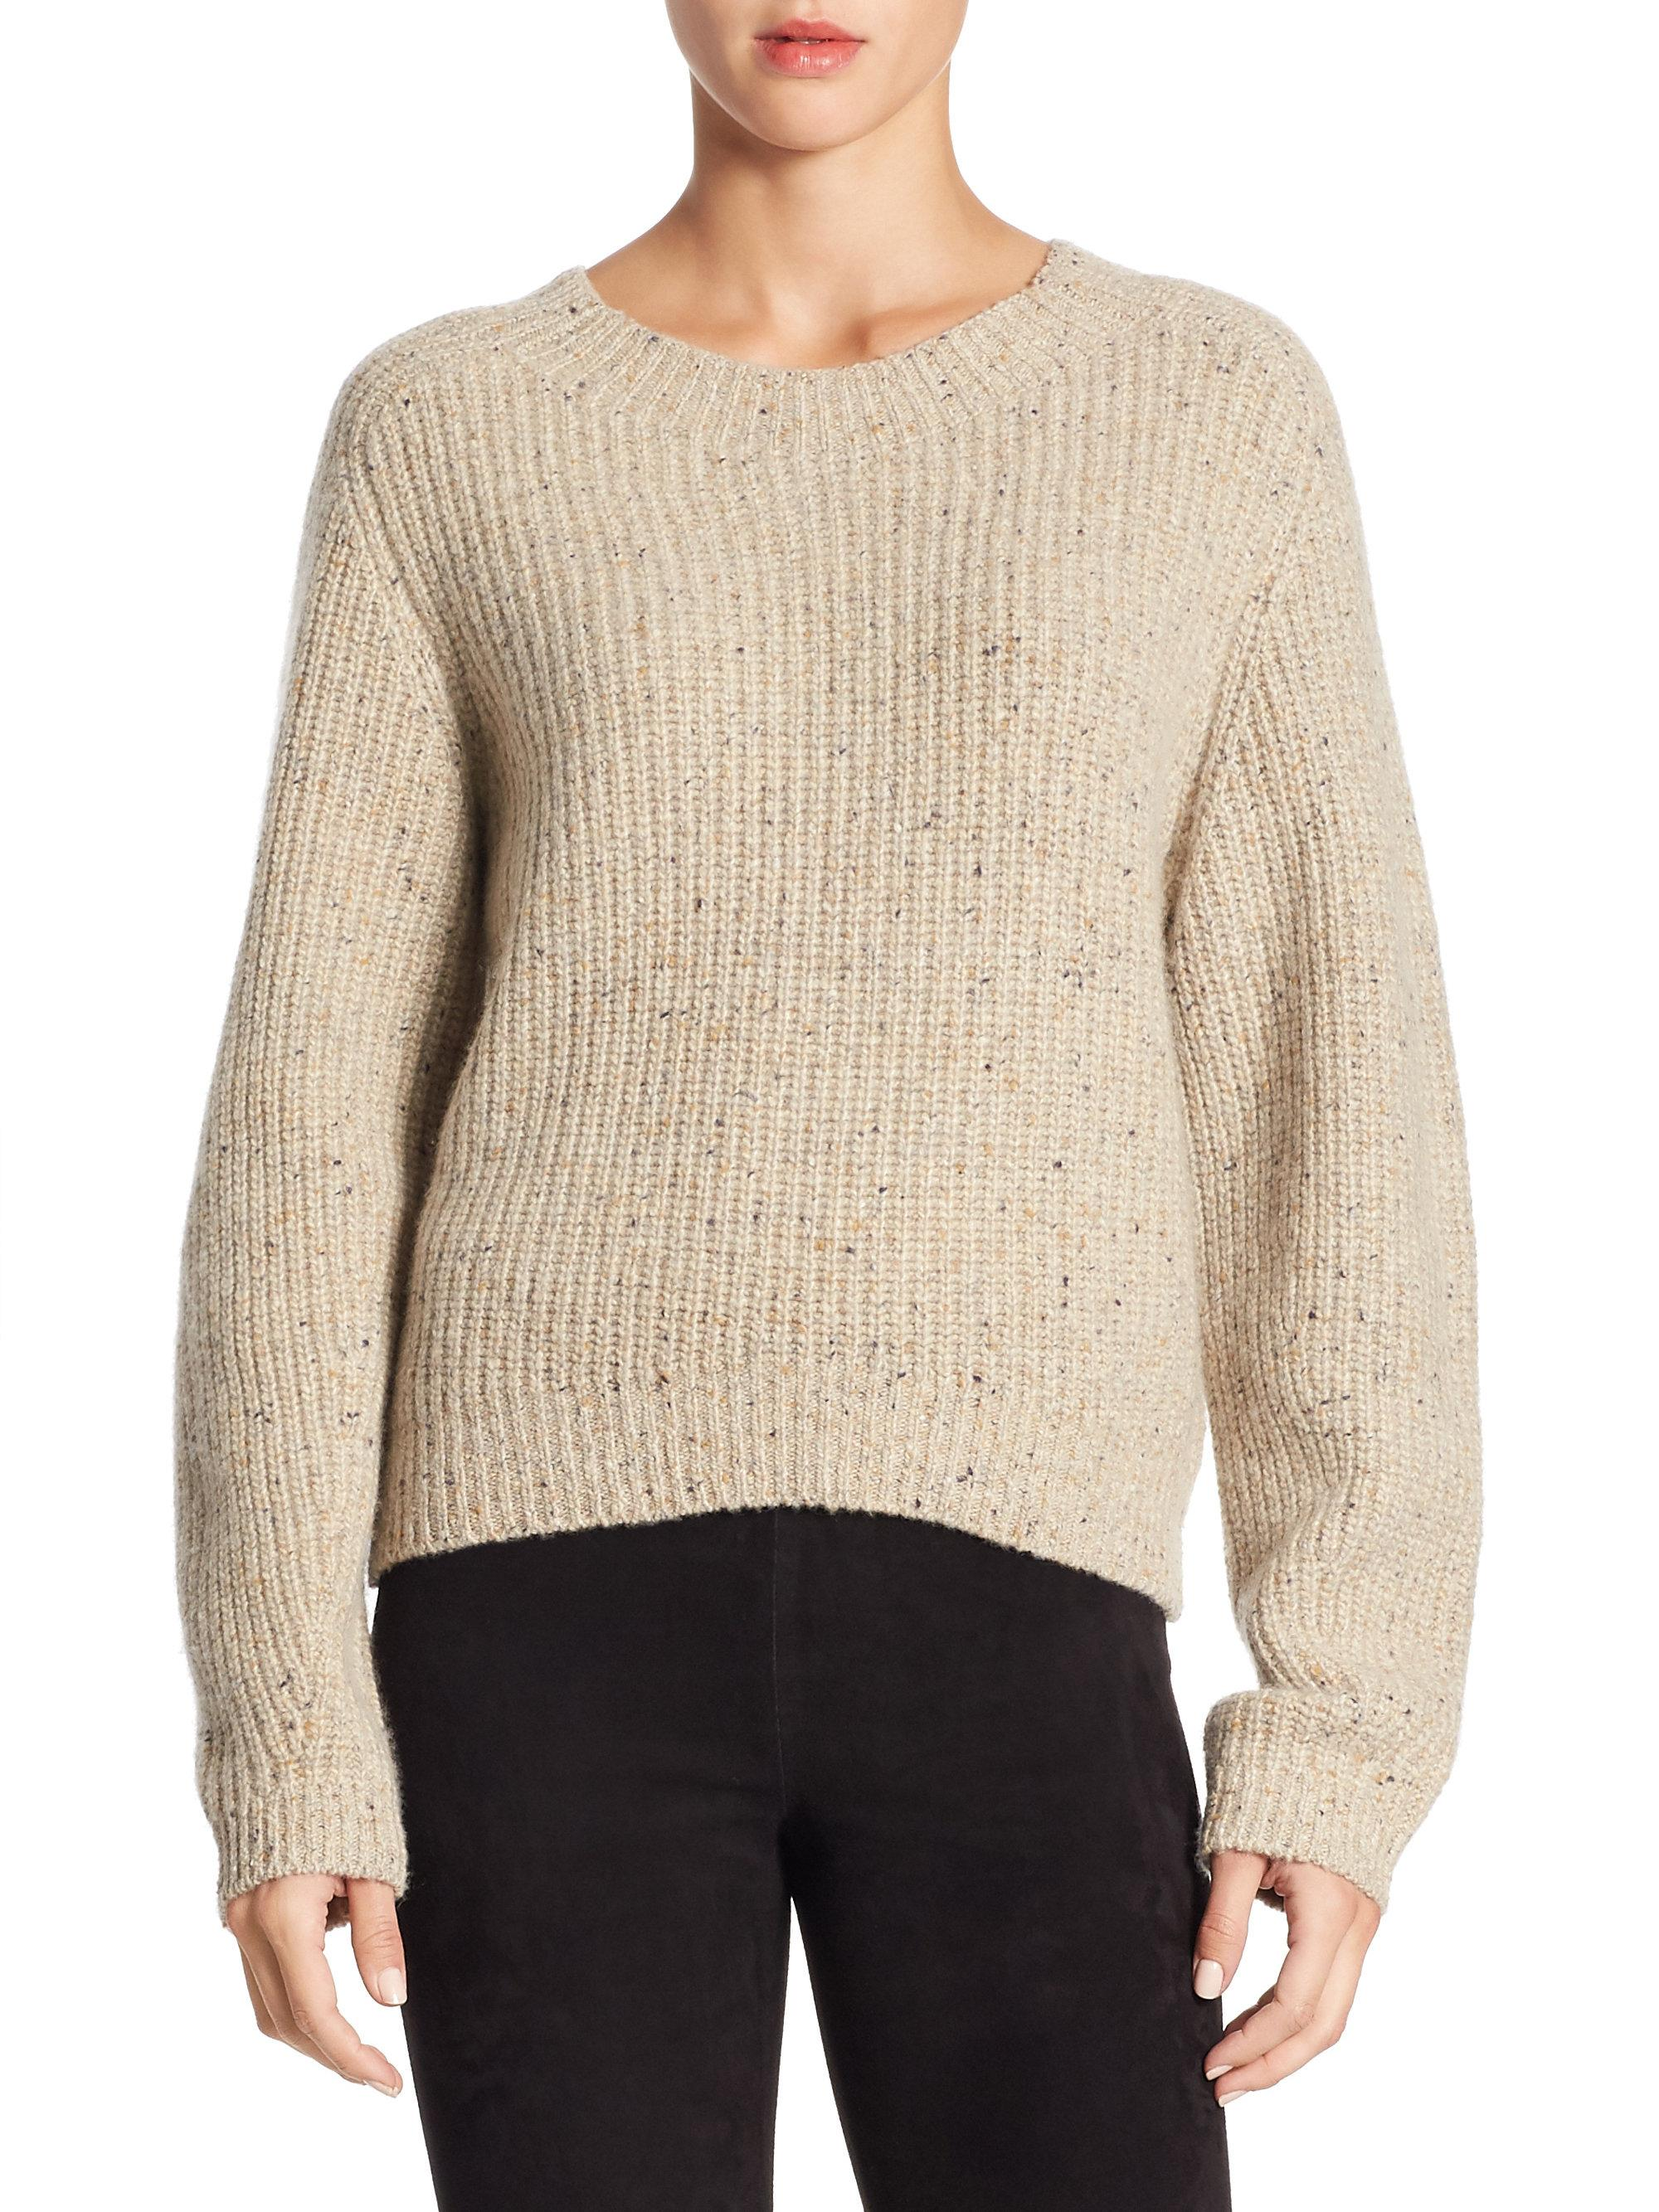 Vince Cropped Saddle Cashmere Sweater in Natural - Save 40% | Lyst